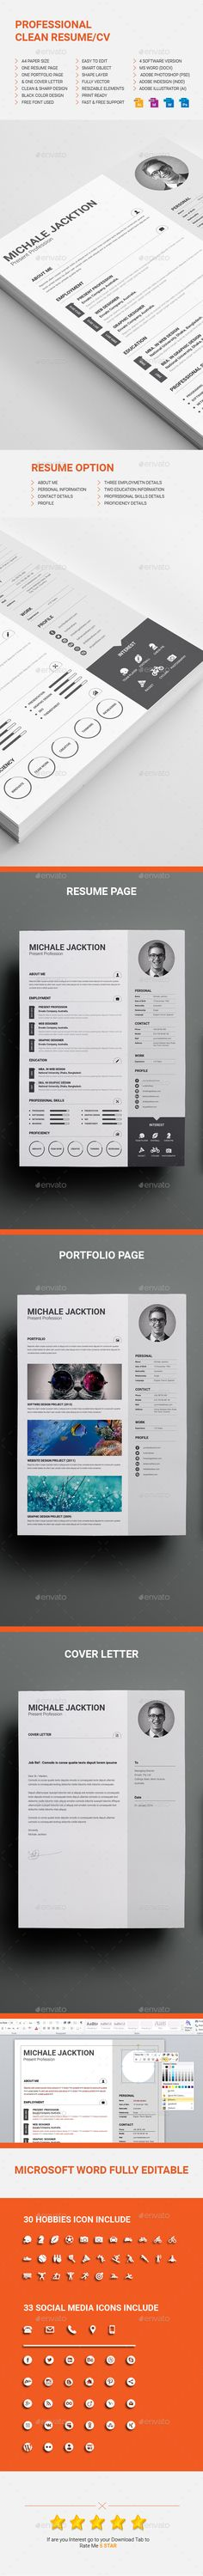 Clean Resume Download%0A Resume   Creative Resumes   Pinterest   Resume  Stationery and Resume  download